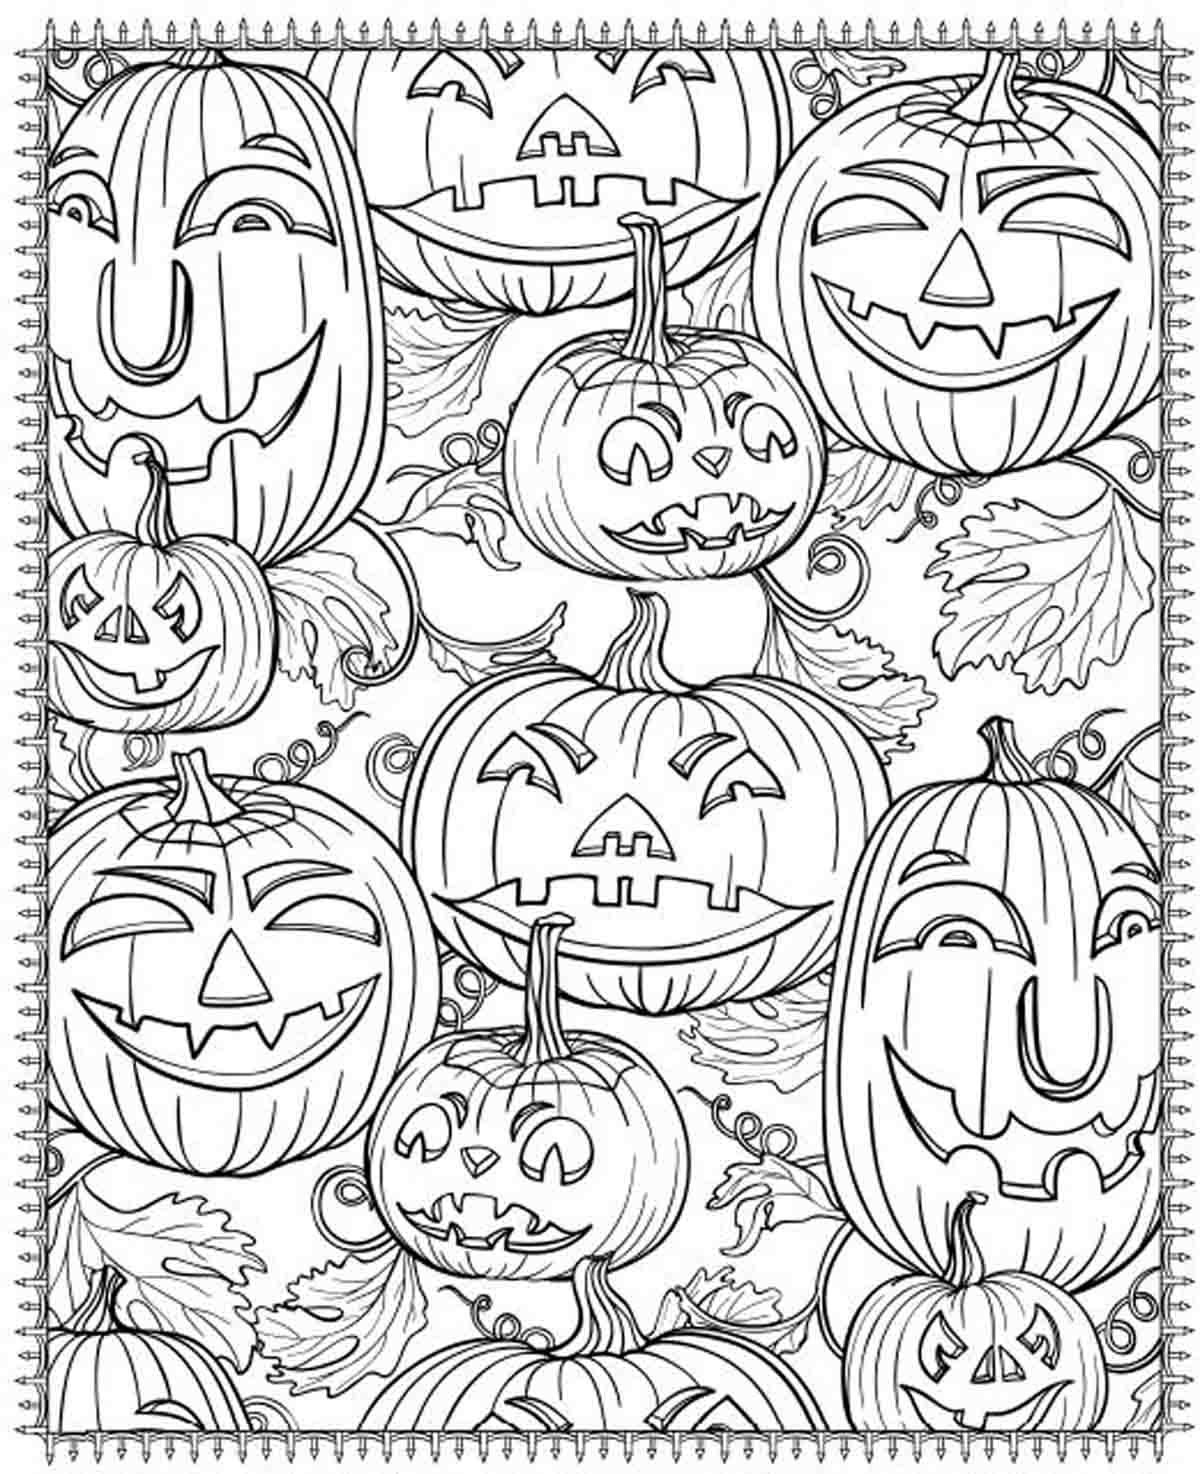 20 Printable Halloween Pages to Color While Eating Candy Corn